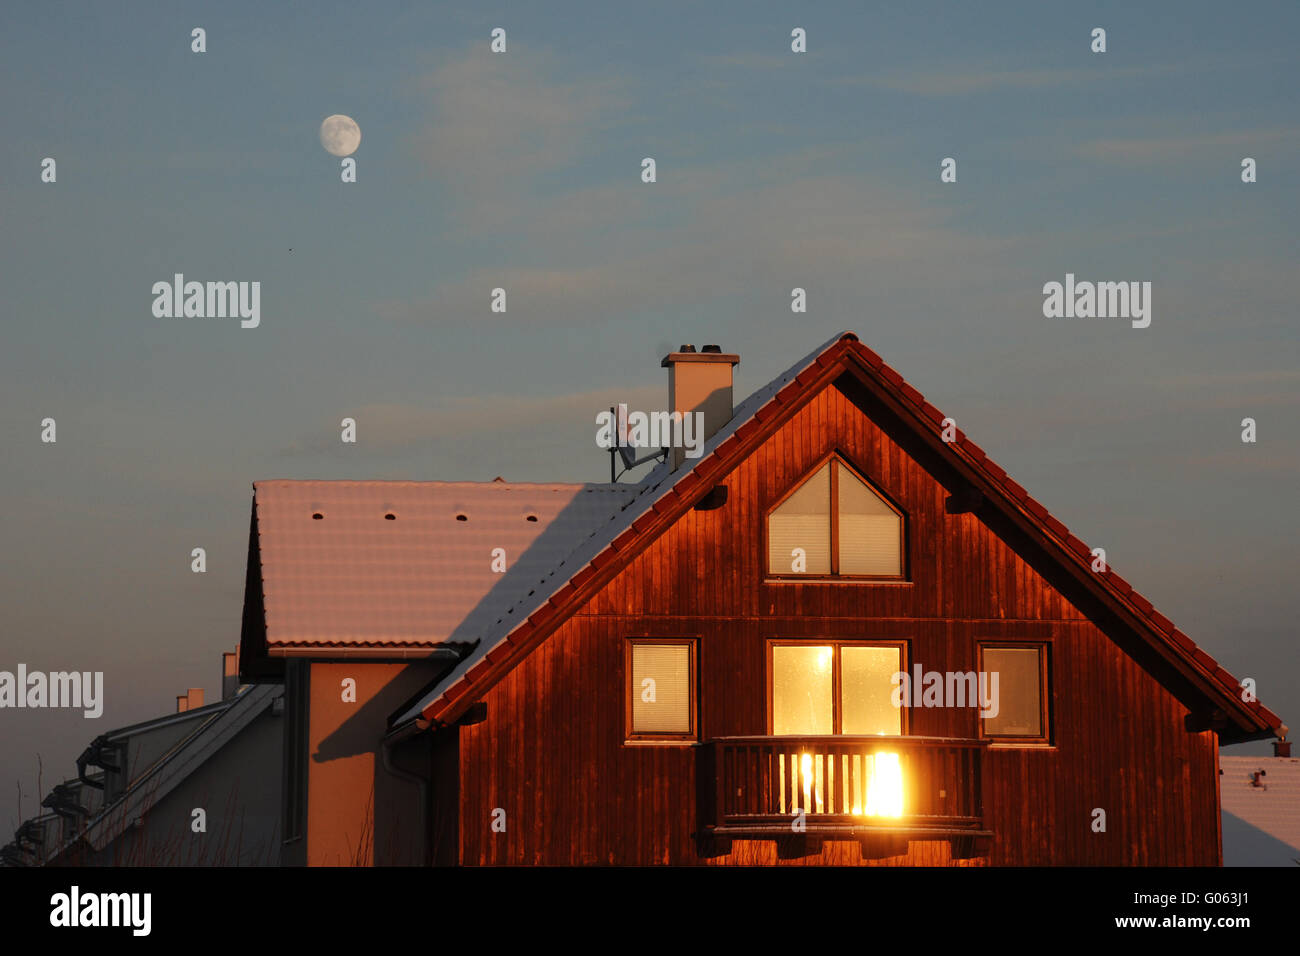 Wintersun reflecting in the window of a house - Stock Image